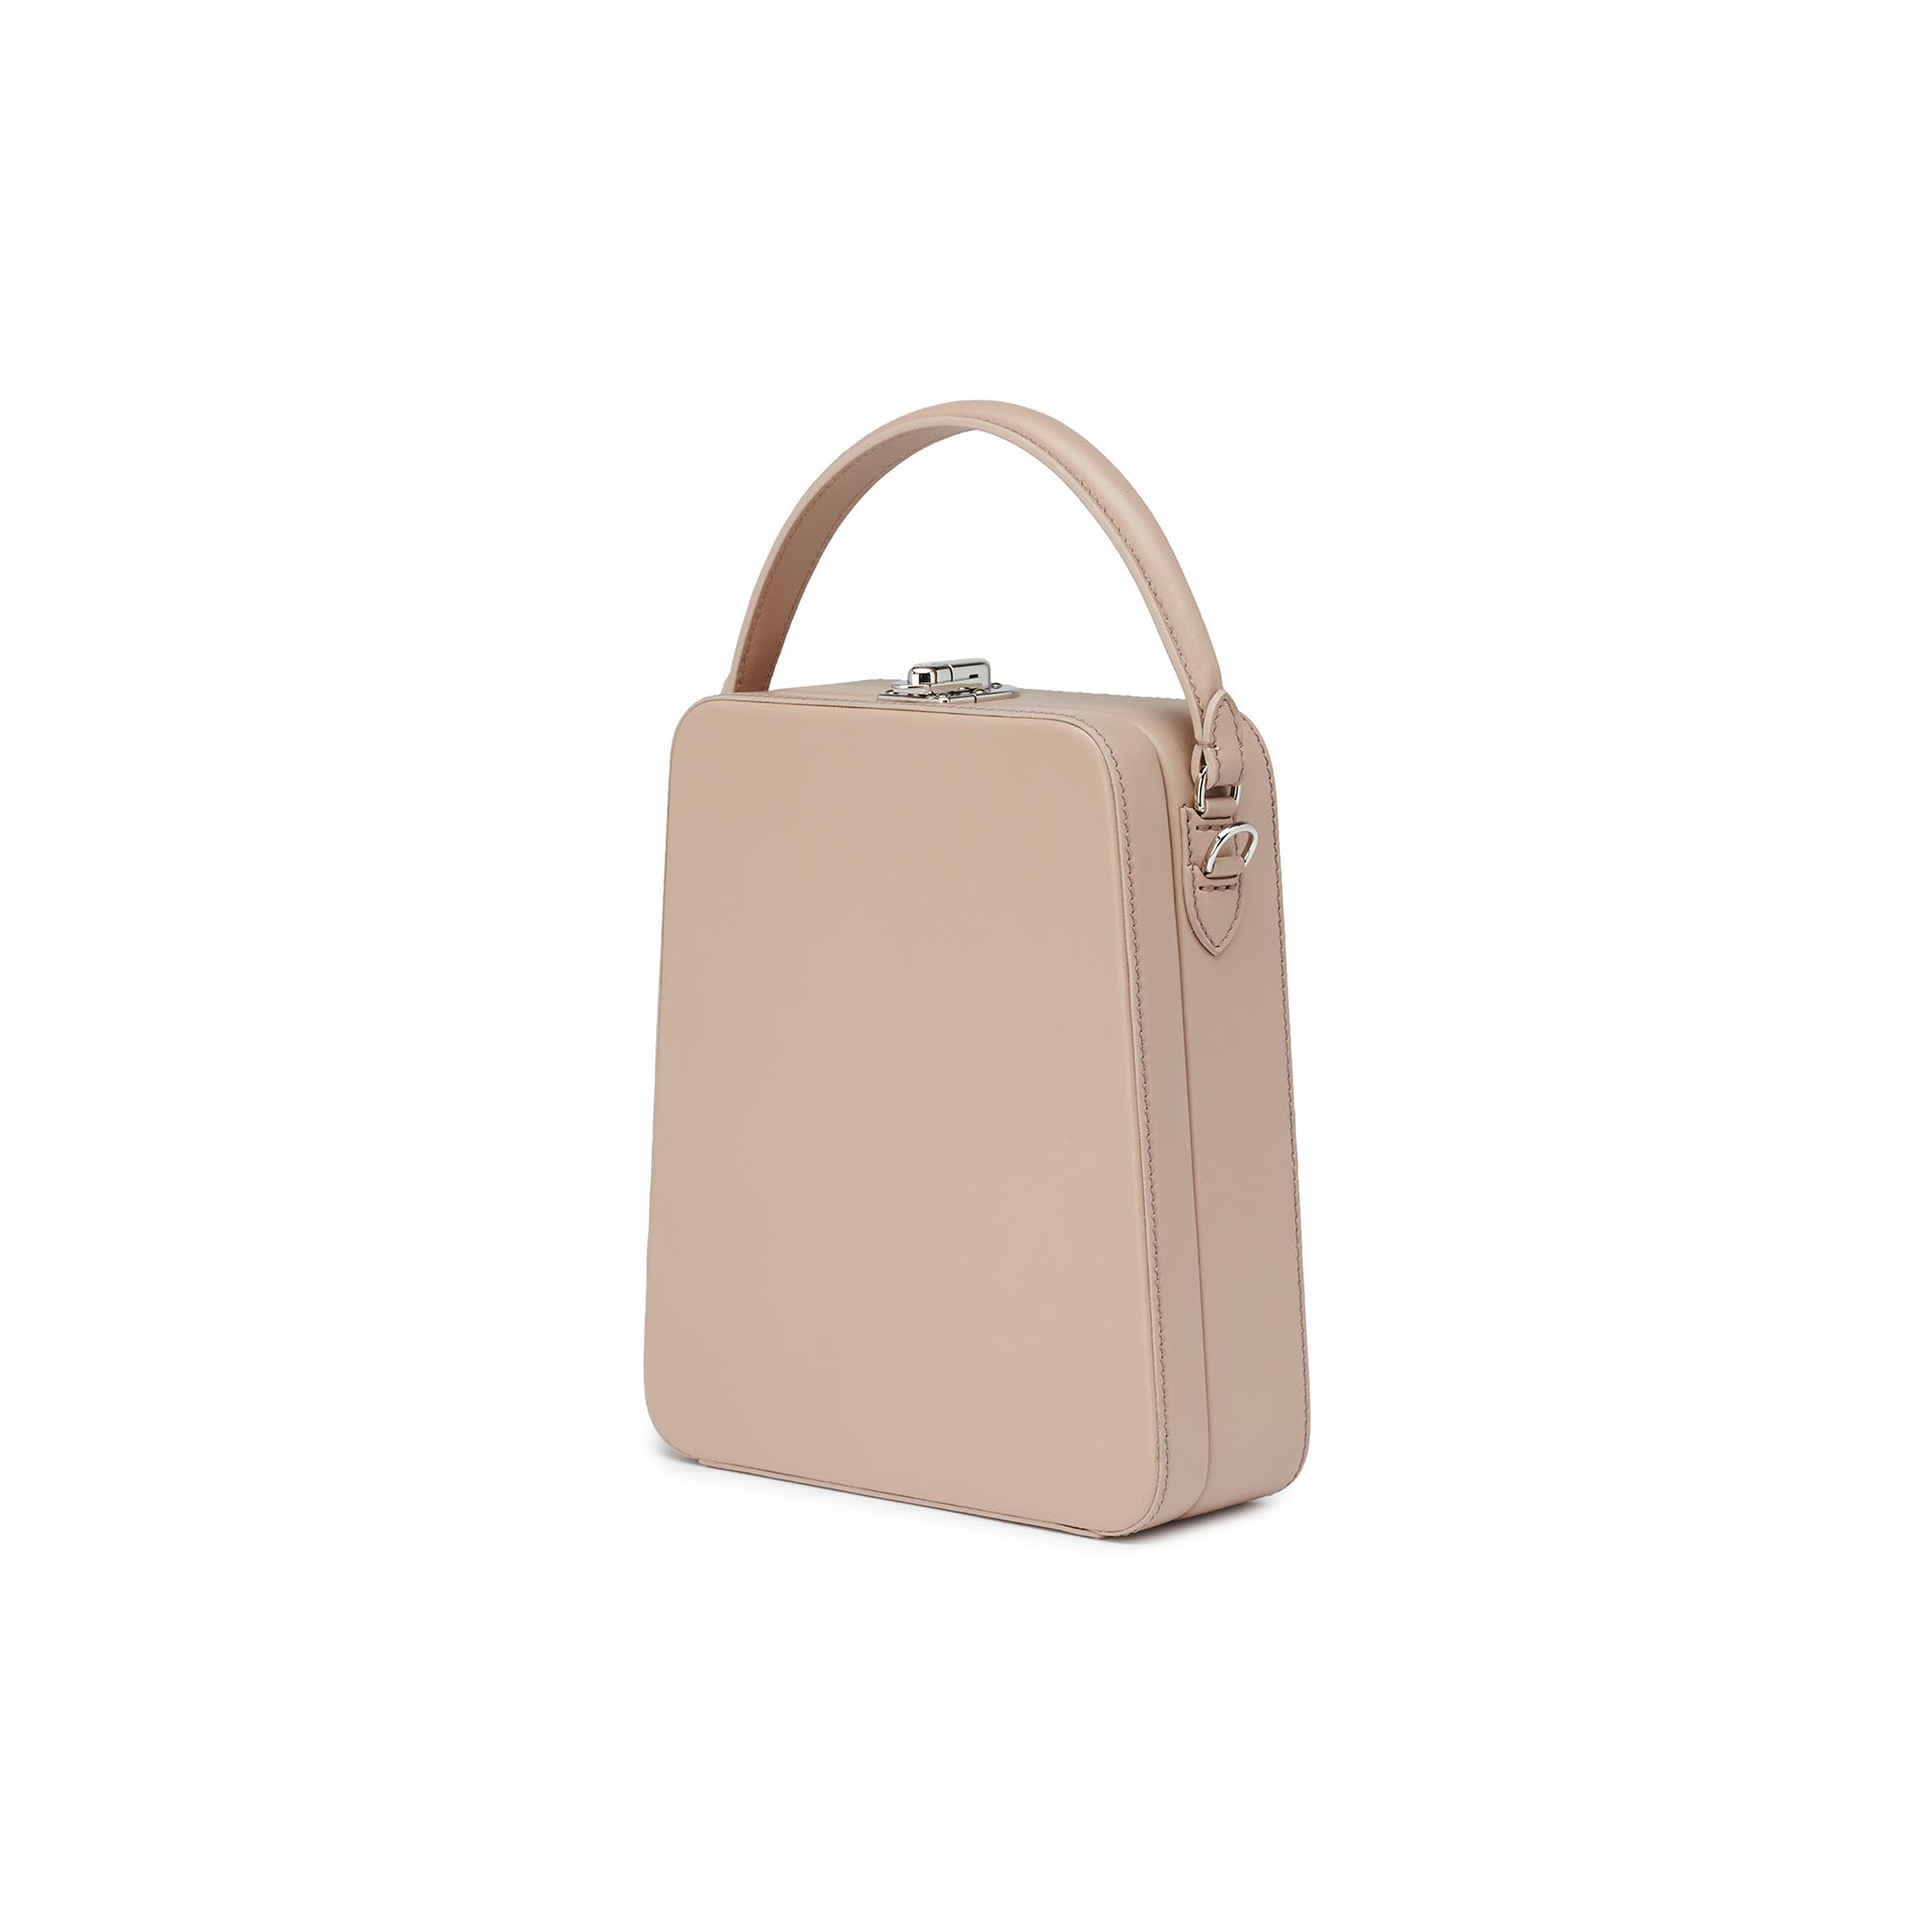 Tall-Bertoncina-nude-french-calf-bag-Bertoni-1949_02